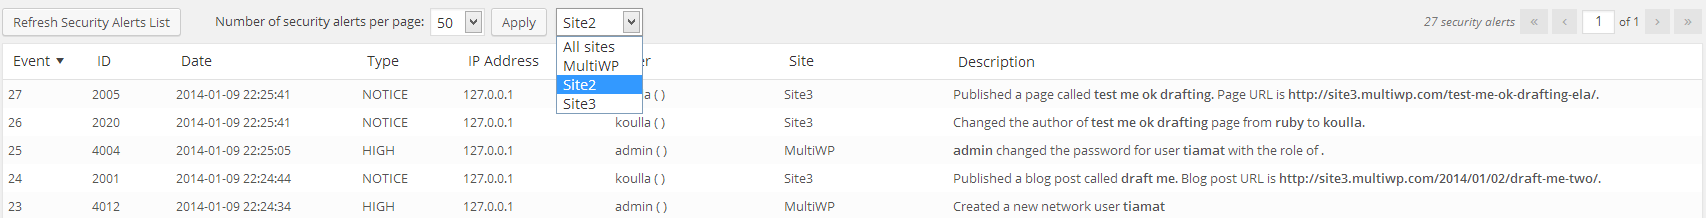 Multisite Network Administrator preselecting a site from the site drop down menu to filter security alerts and view WordPress security alerts for that site only